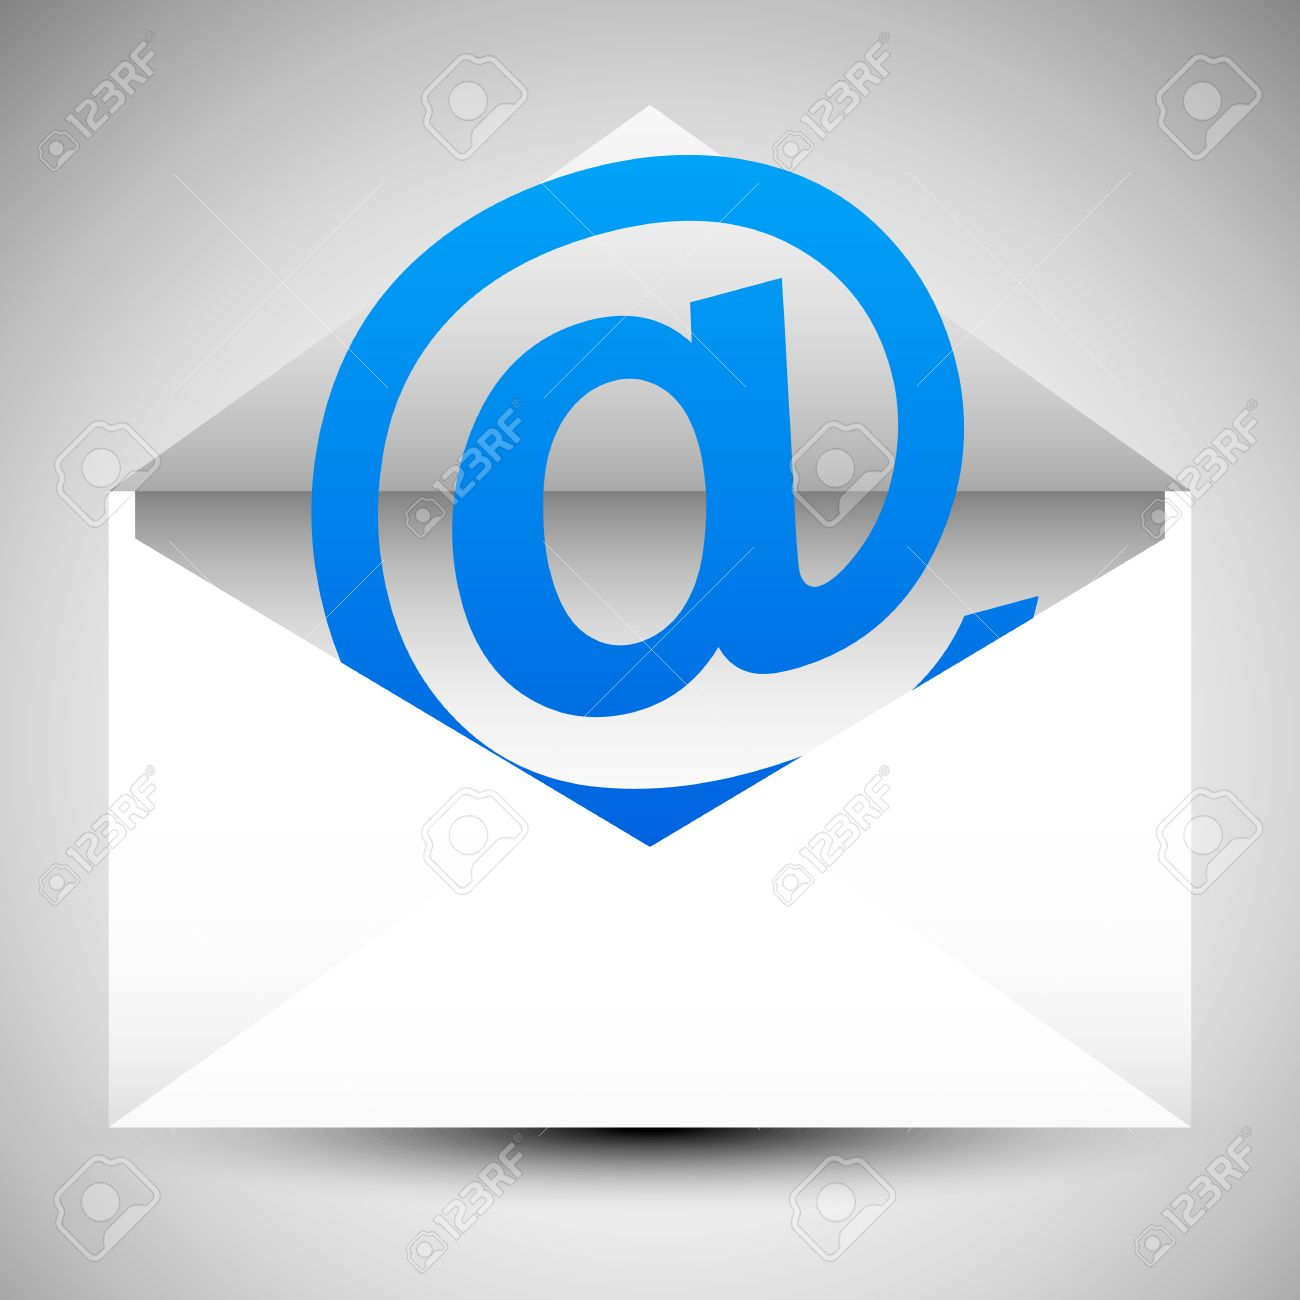 Envelope with at symbol. Email, letter, correspondance, support concepts - 32292276